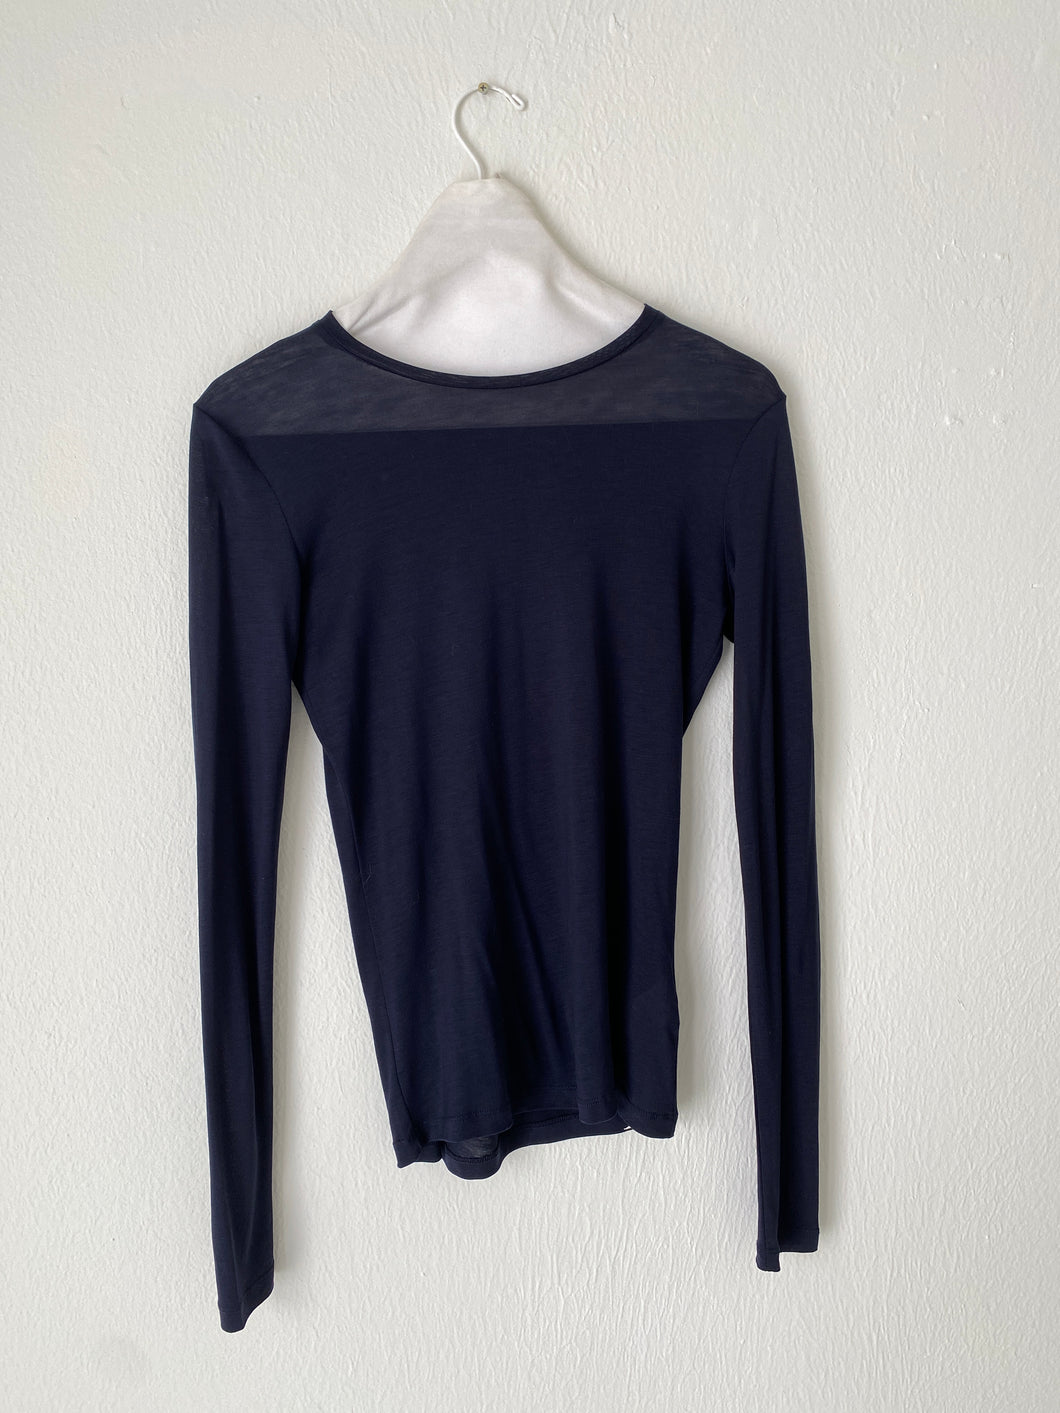 Acne Studios Long Sleeve